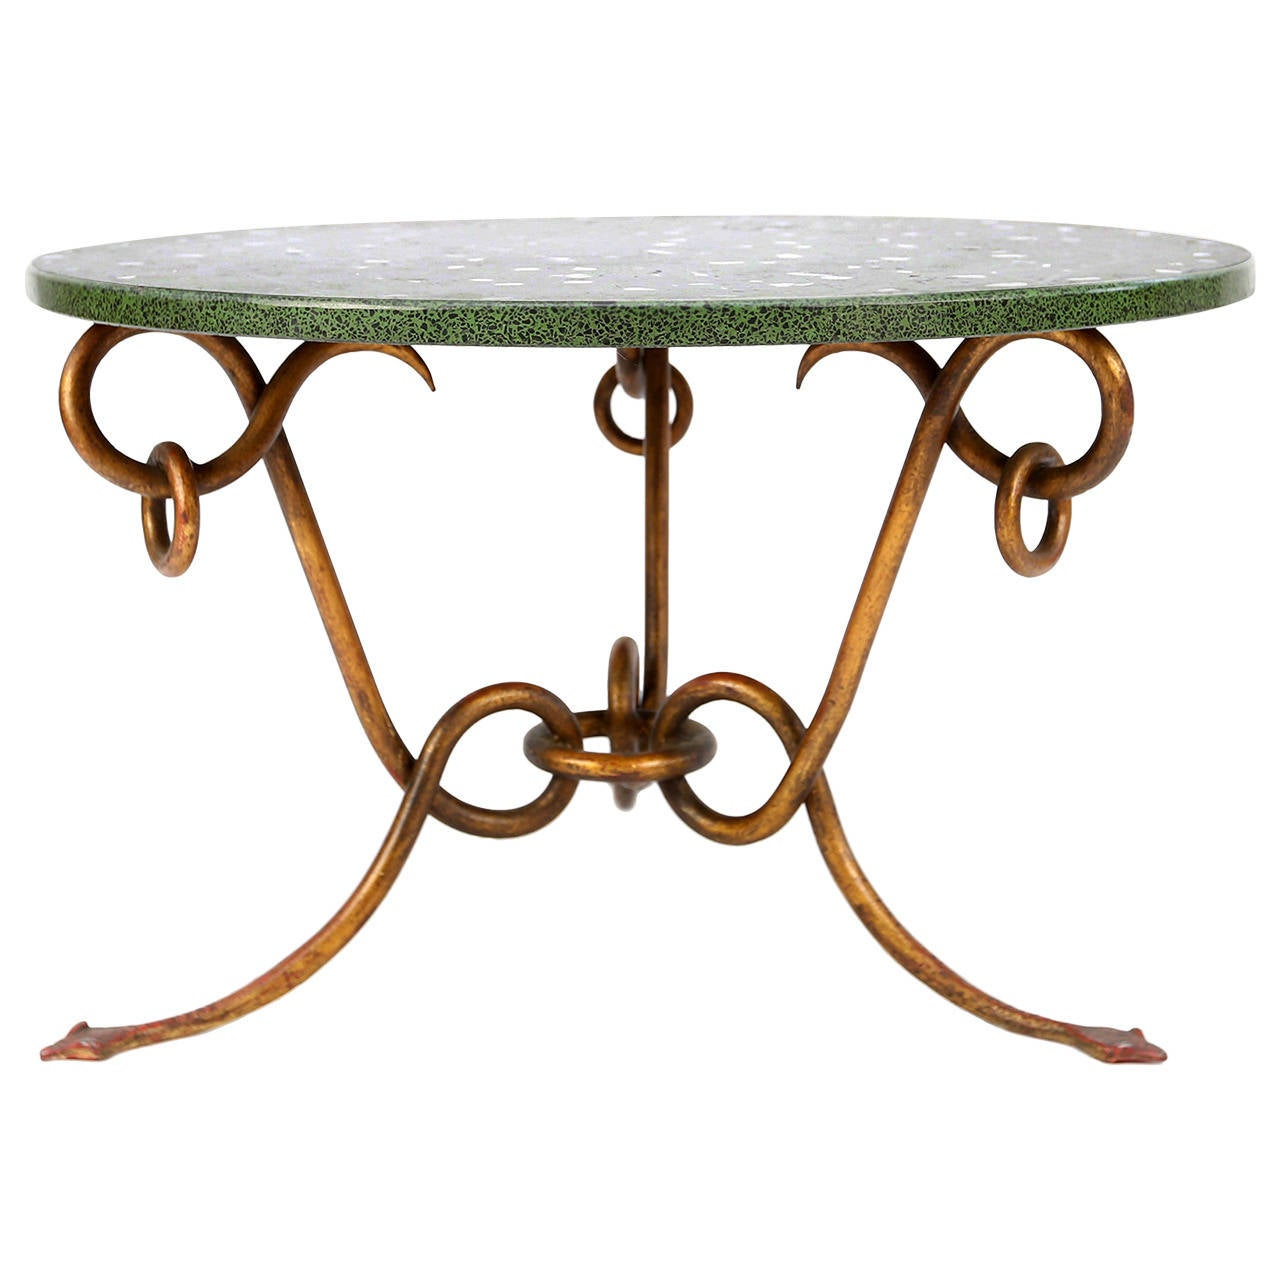 Chan Marble Top Round Coffee Table 80cm Brown Brass: René Drouet Coffee Table With Marble Top At 1stdibs